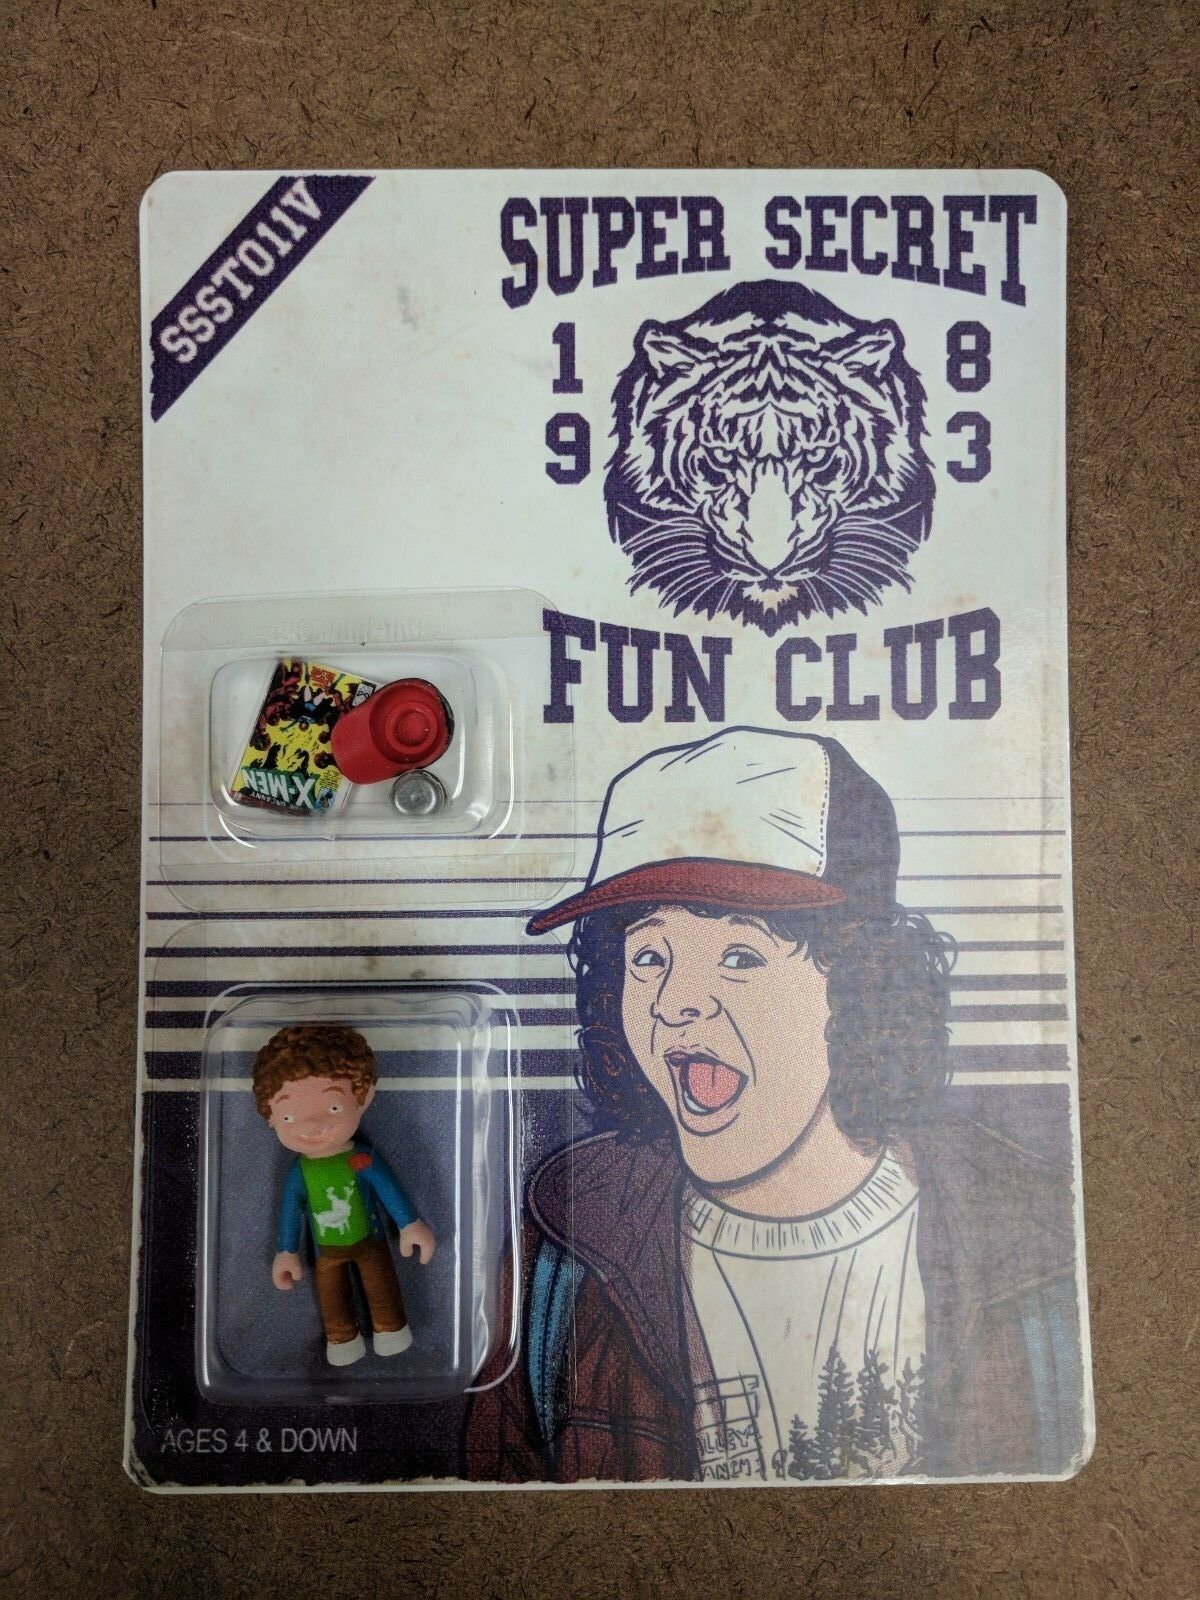 Super Secret Fun Club Dustin Stranger Things Figure Limited Ed Gaten Matarazzo